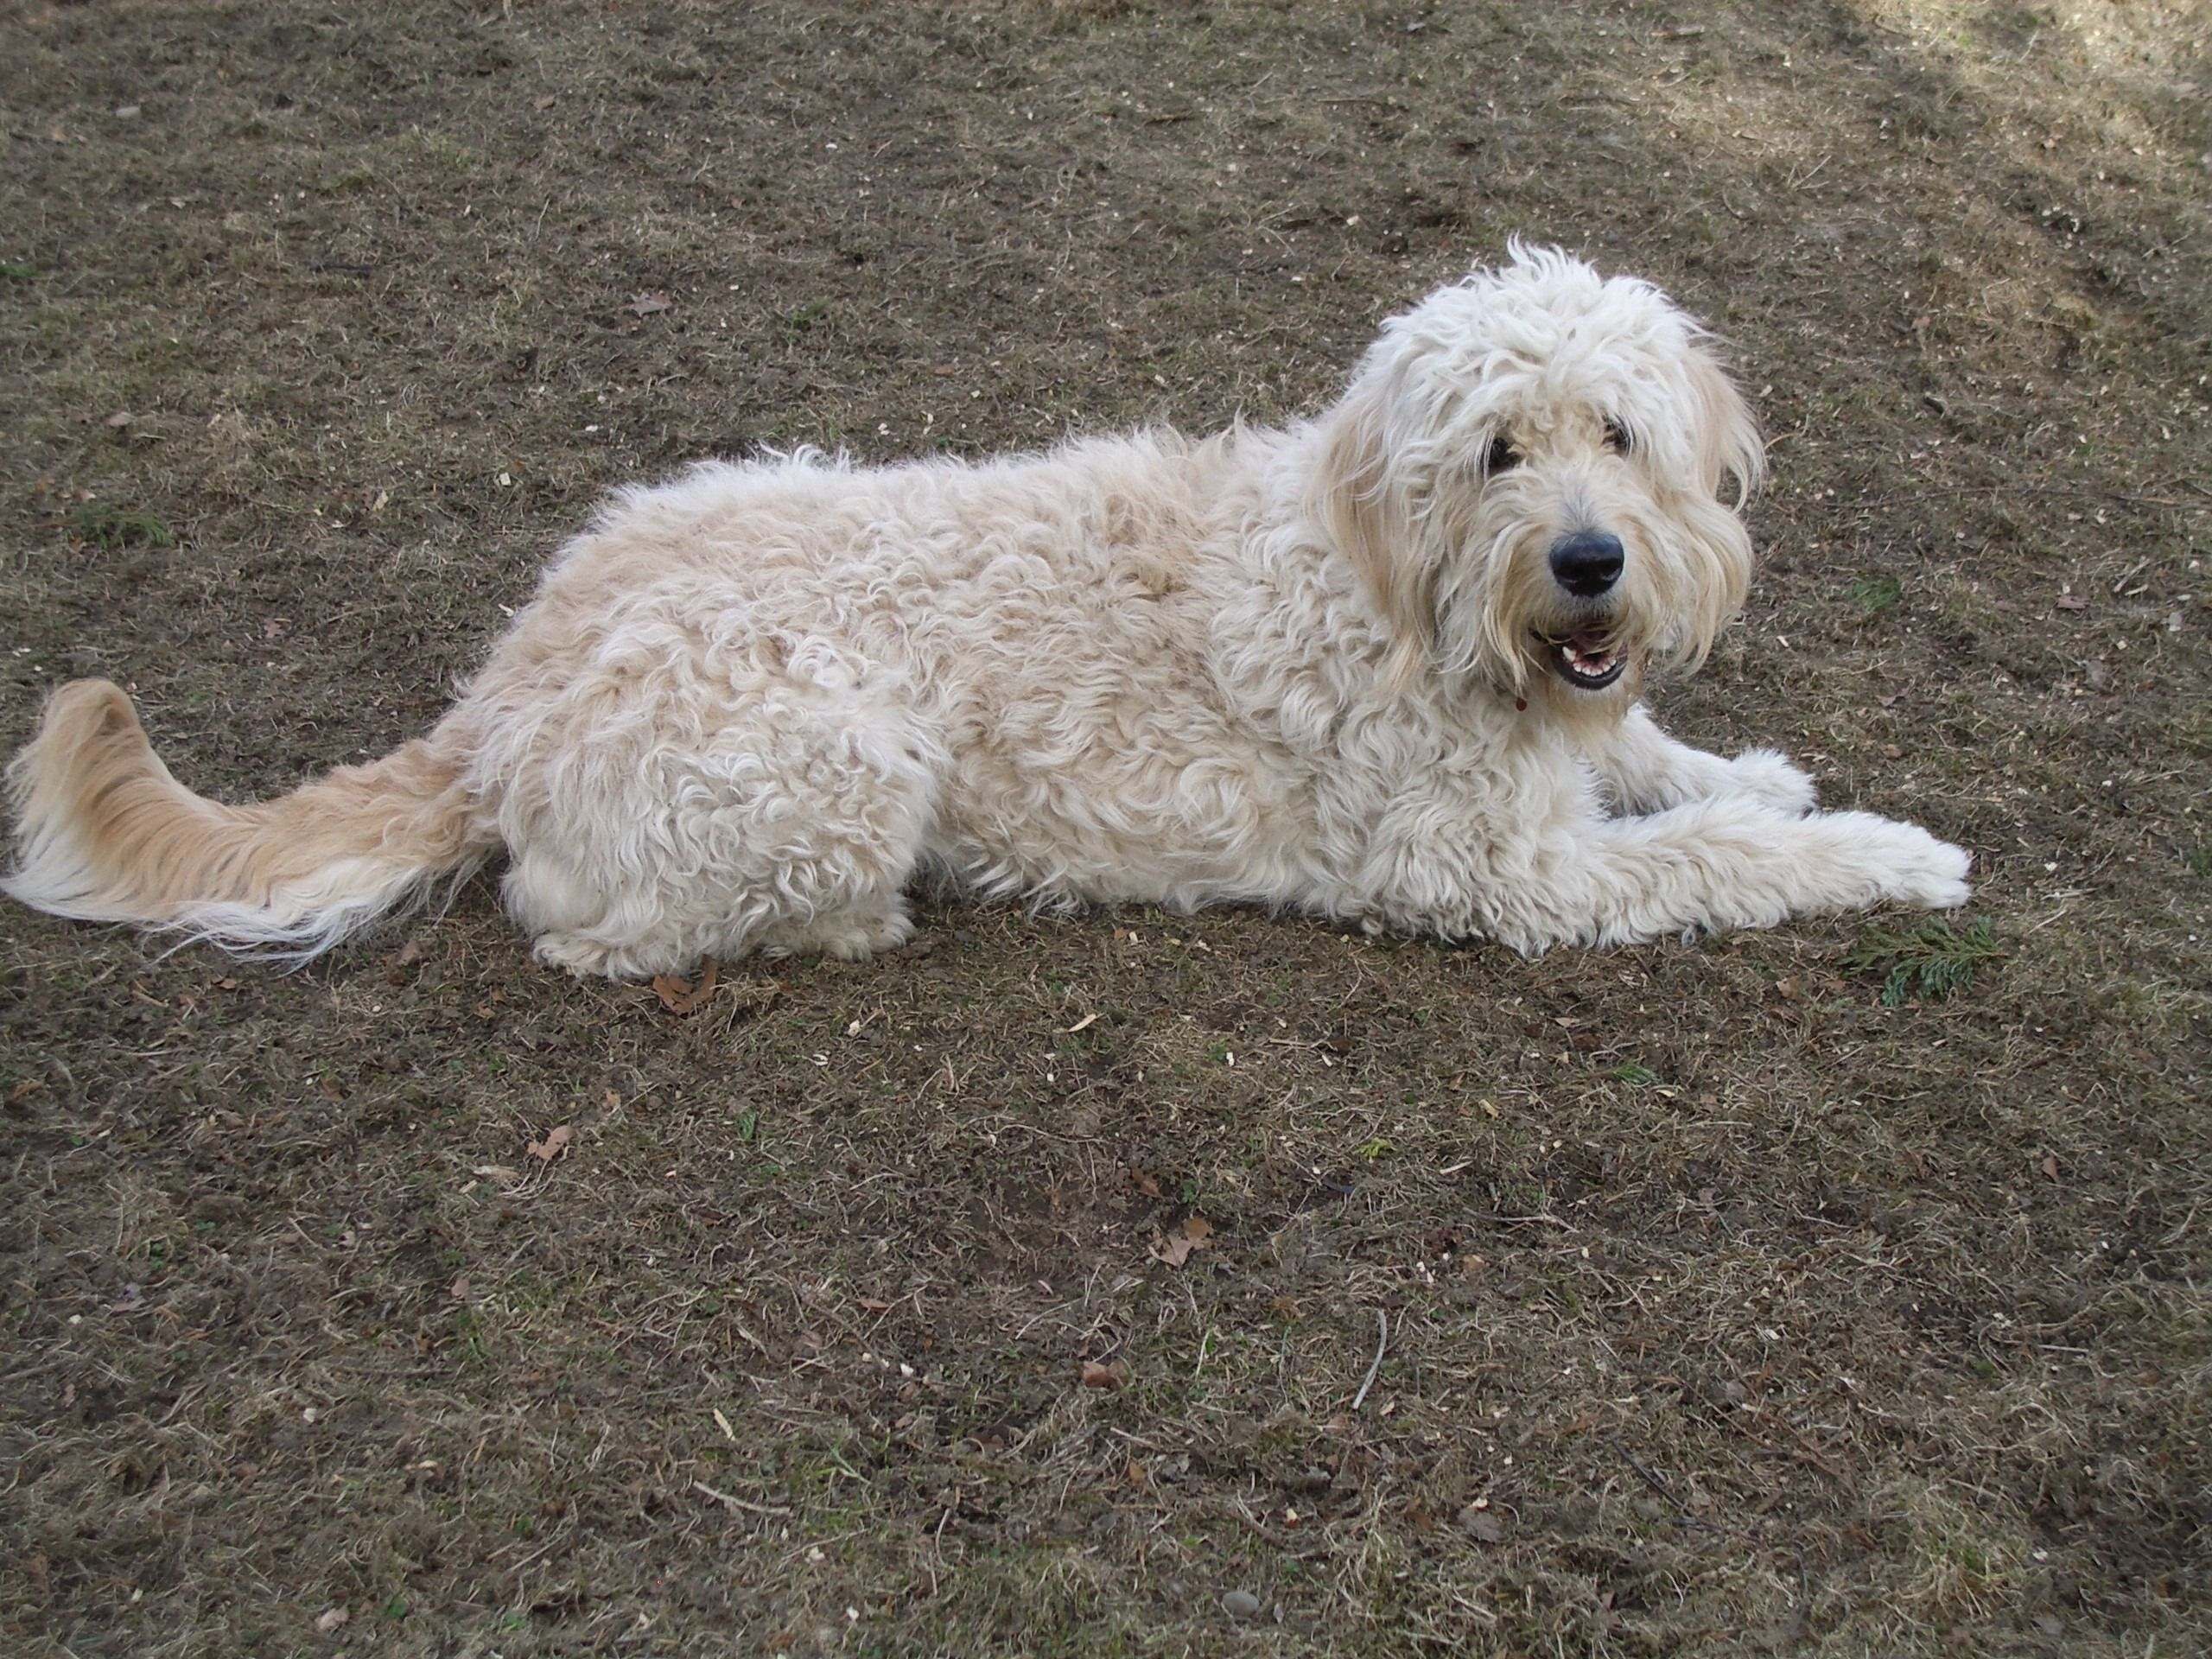 759789ced3 Desktop pics of golden doodle dogs dowload | 3D-HD Wallpaper ...